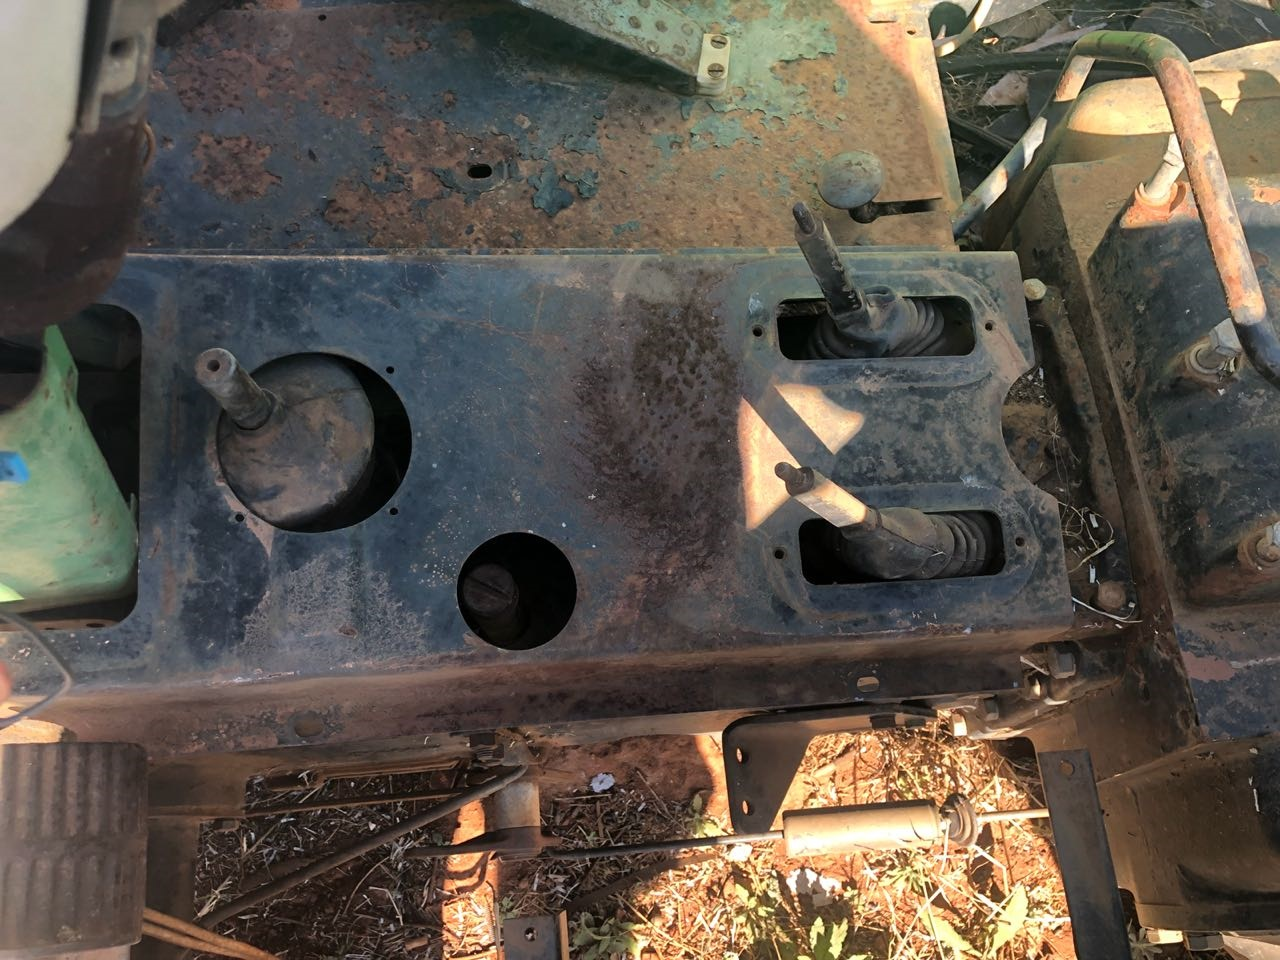 John Deere 2400 - Strip for Spares from